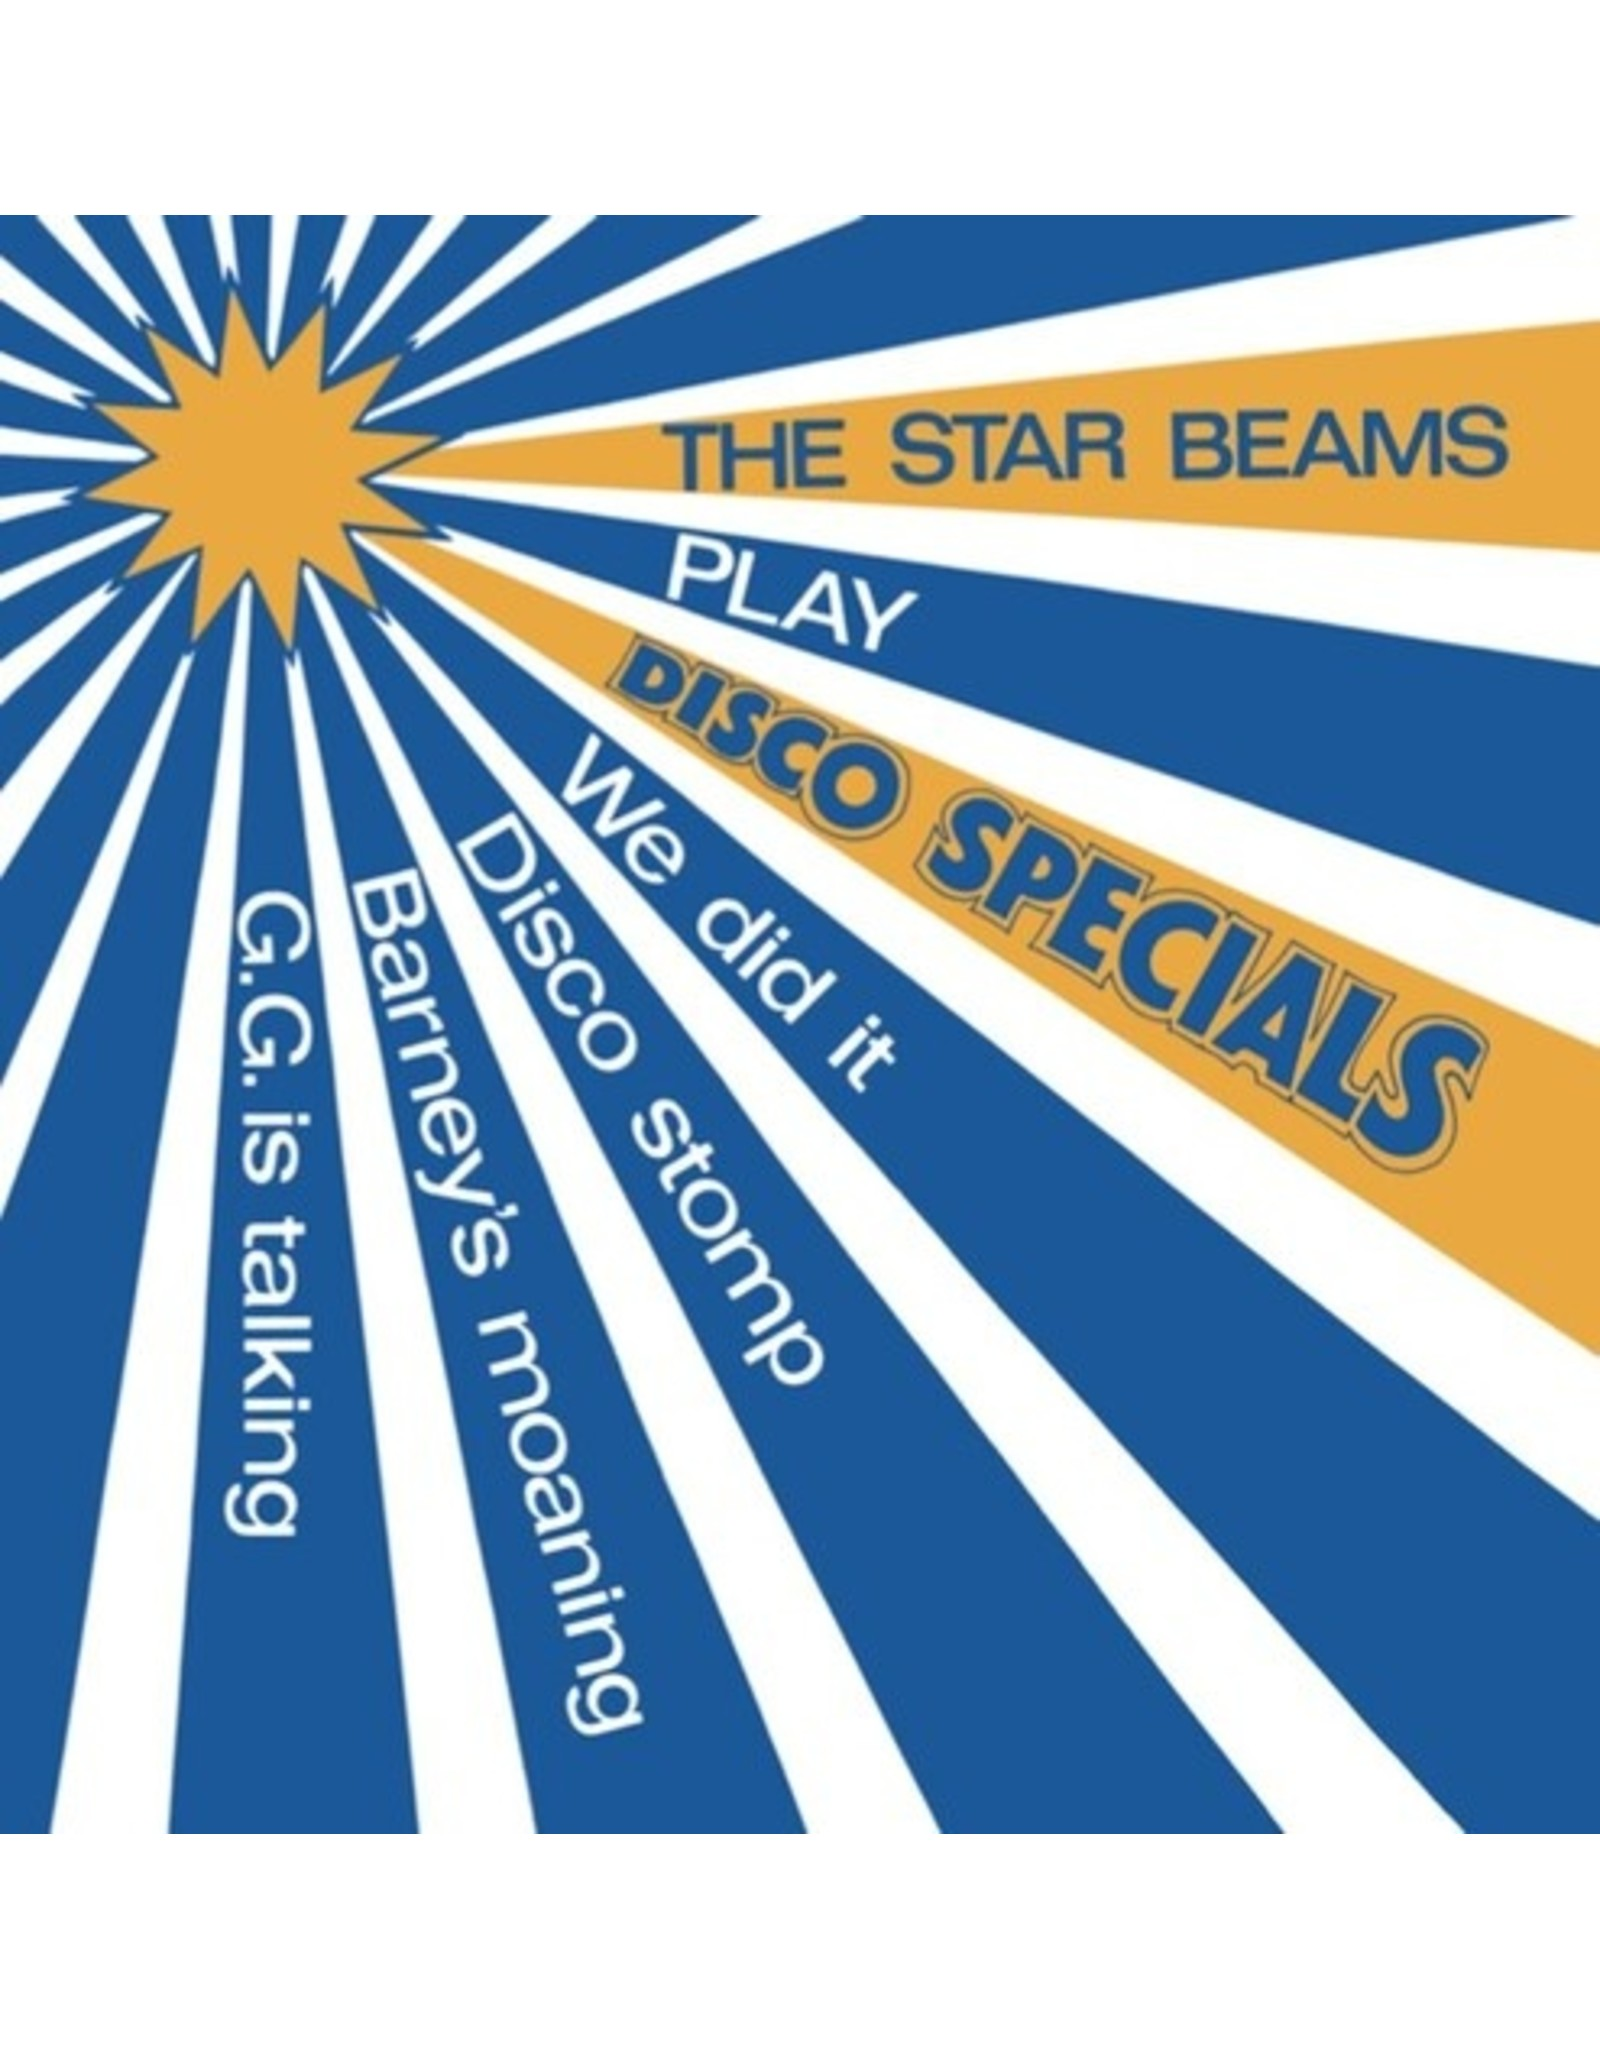 The Star Beams - Play Disco Specials LP